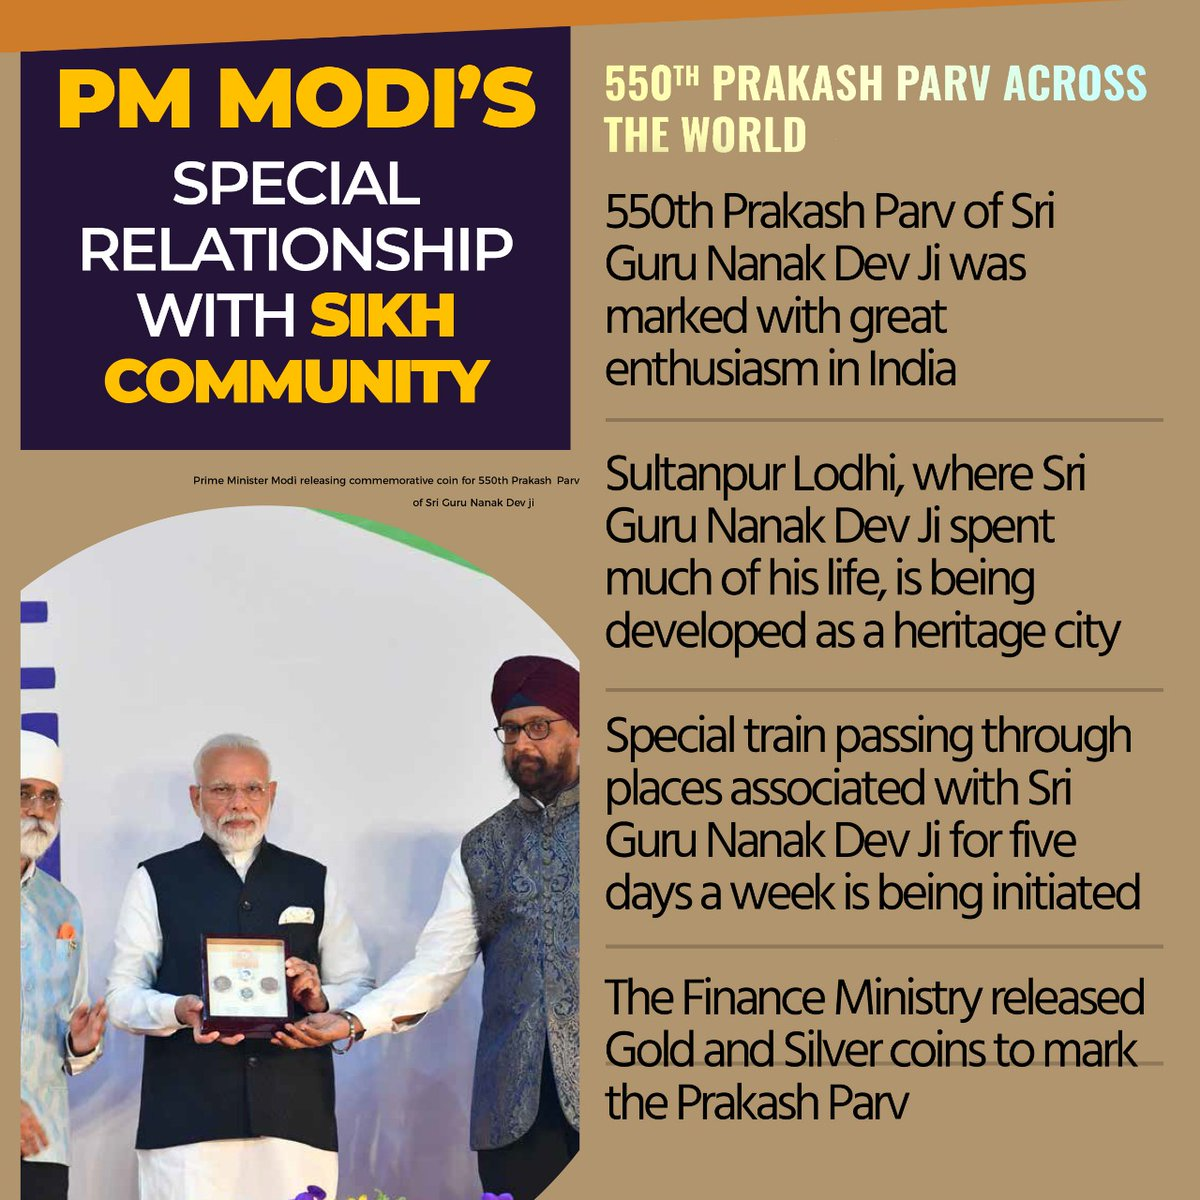 PM Shri @narendramodi's special relationship with Sikh community reflects in his government's actions!  • 550th Prakash Parv of Sri Guru Nanak Dev Ji was marked with great enthusiasm in India.  • The Finance Ministry released Gold and Silver coins to mark the Prakash Parv.